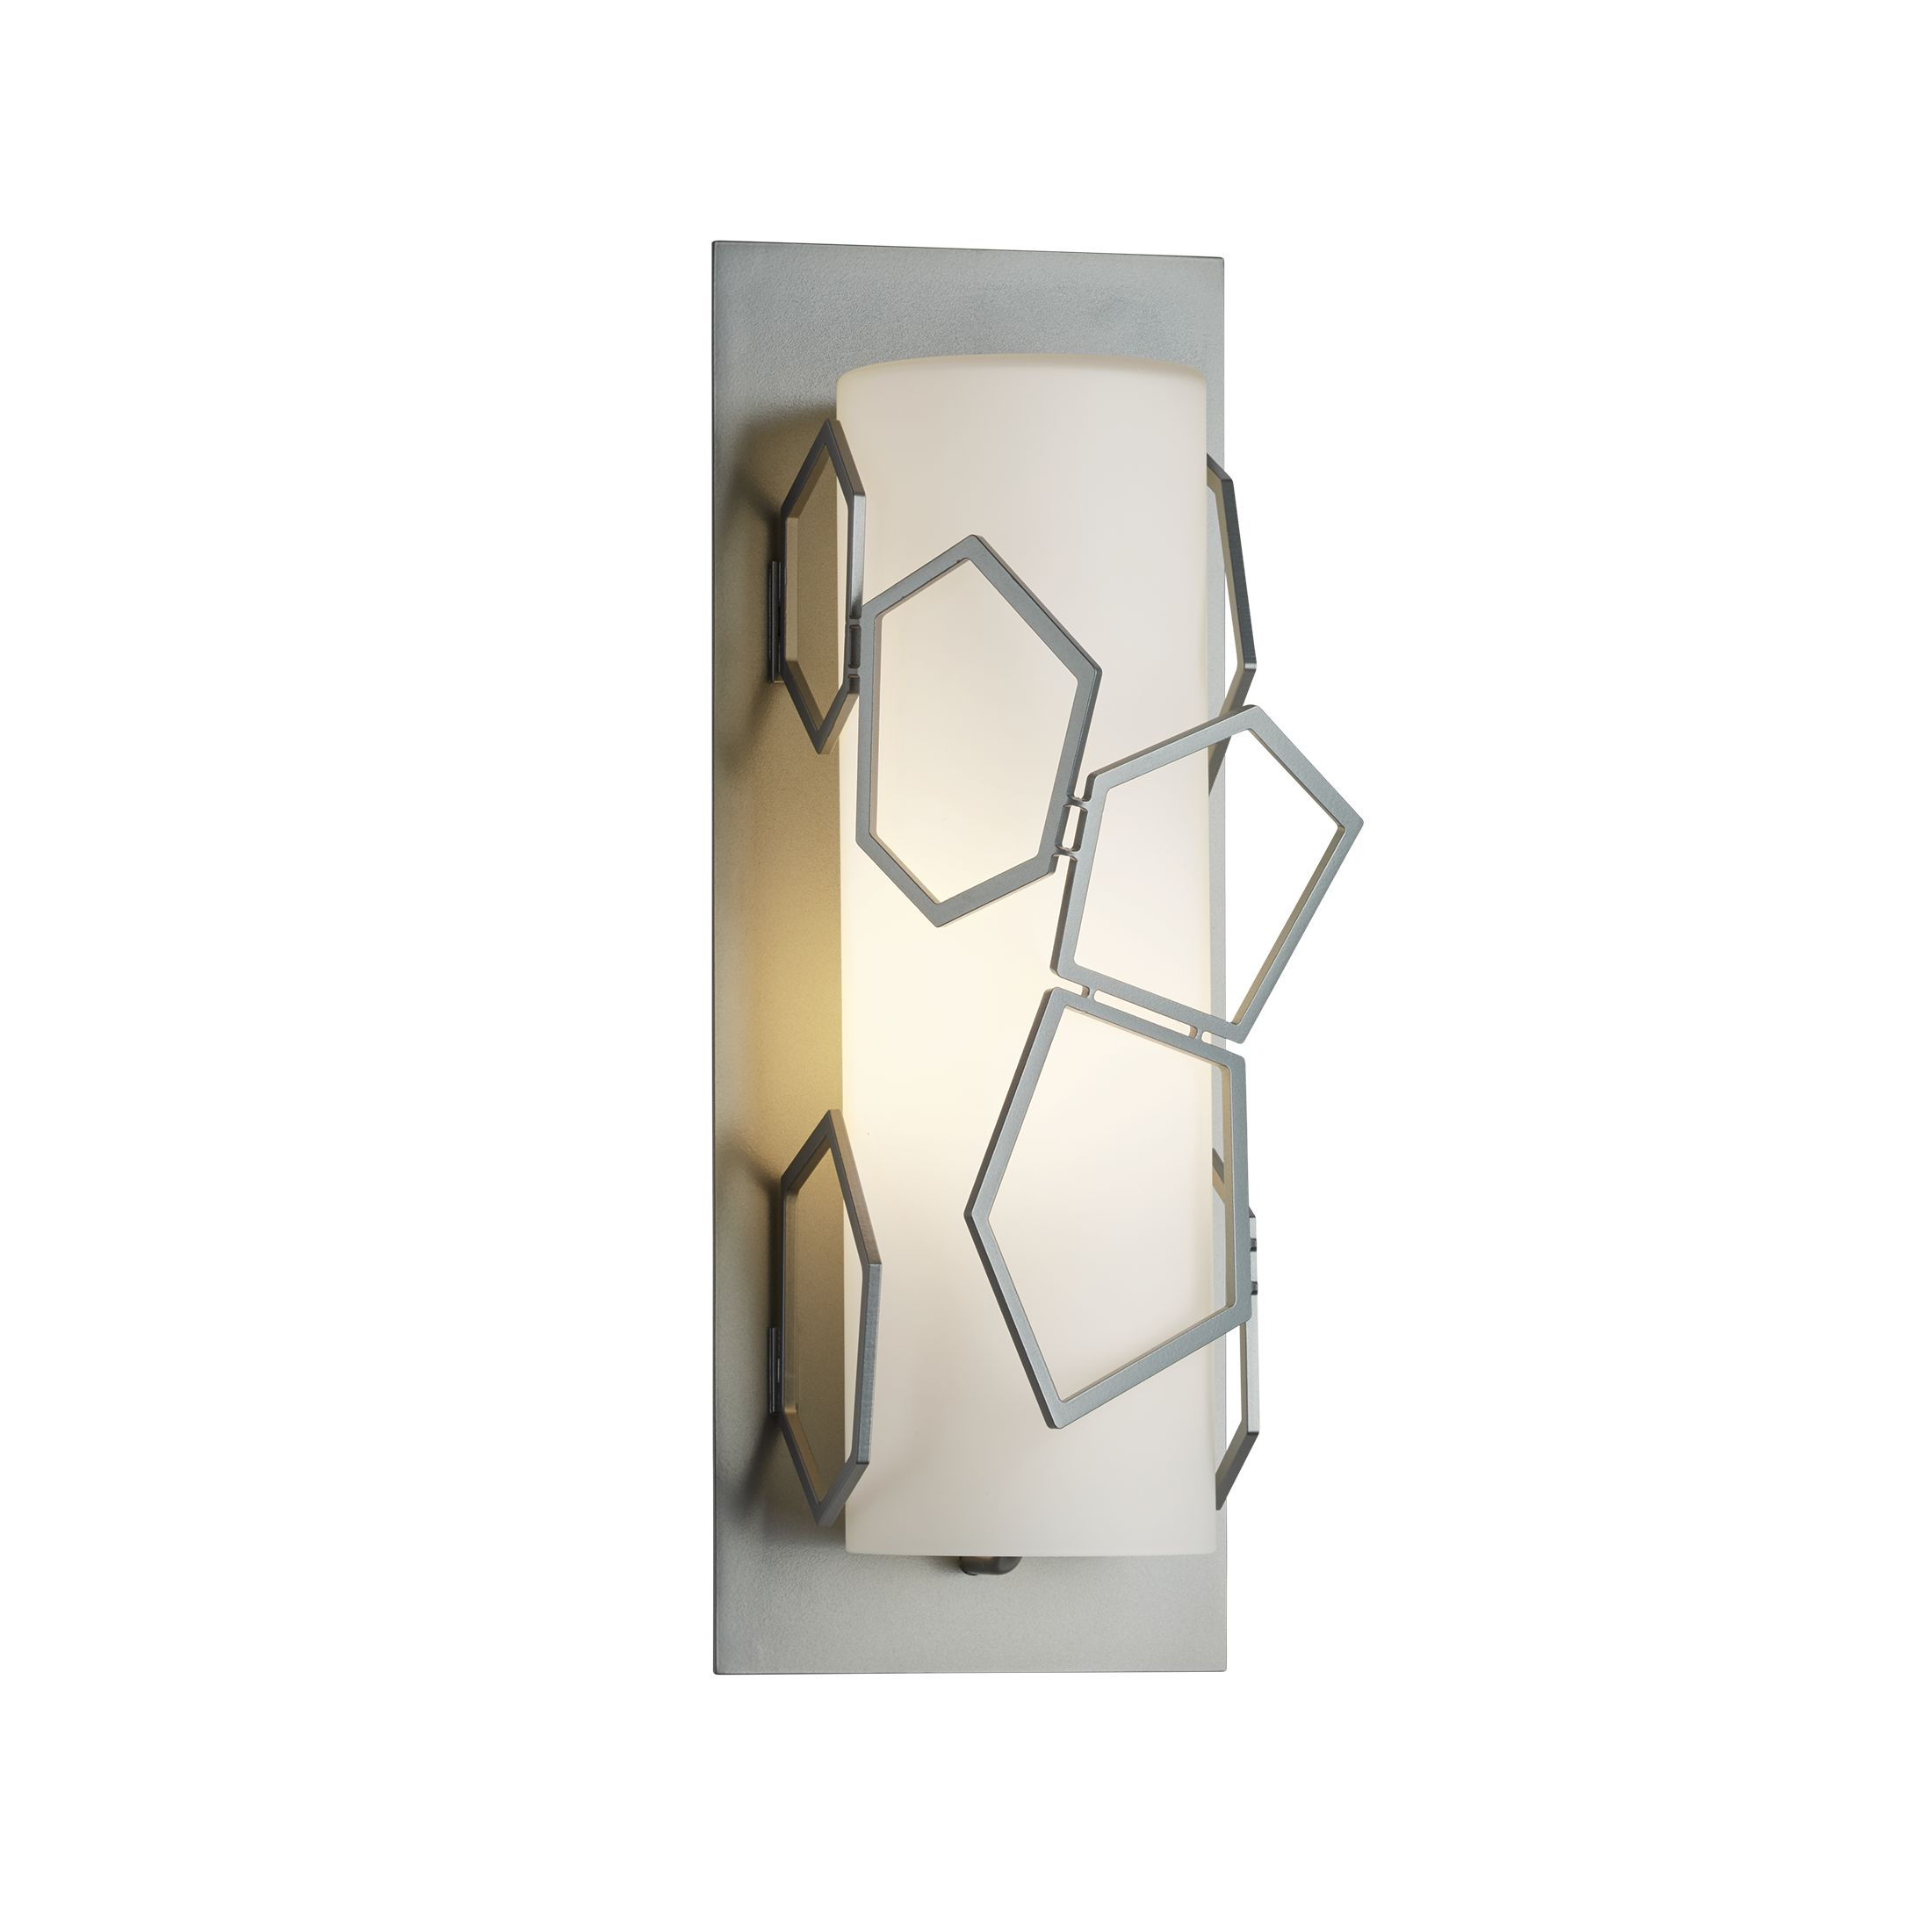 Thumbnail for Umbra Large Outdoor Sconce